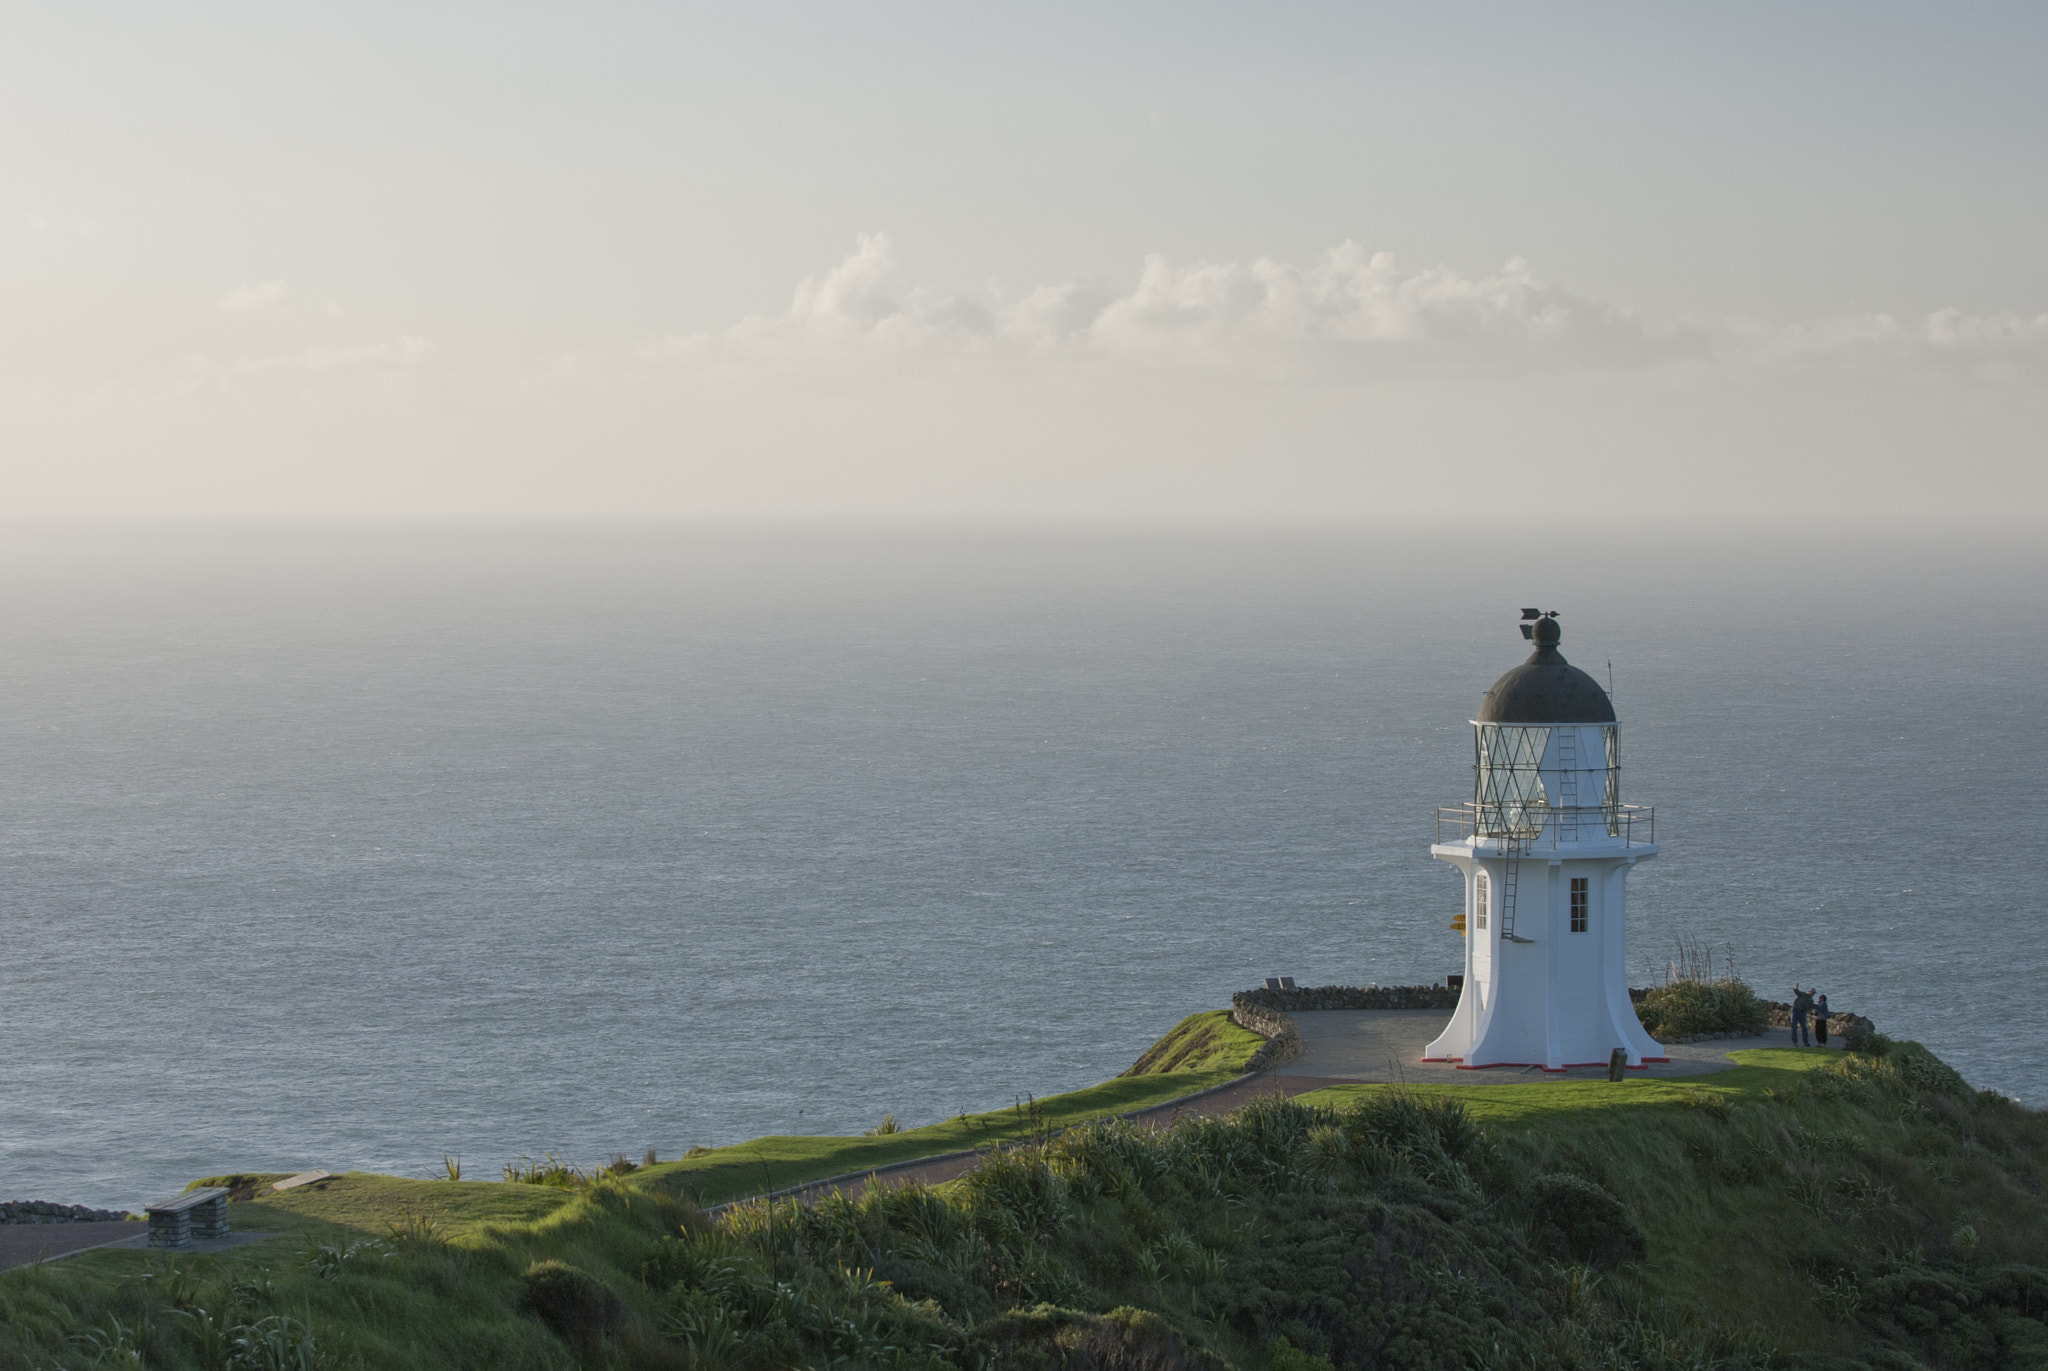 Photograph Cape Reinga Light House by Barrie Turpin on 500px